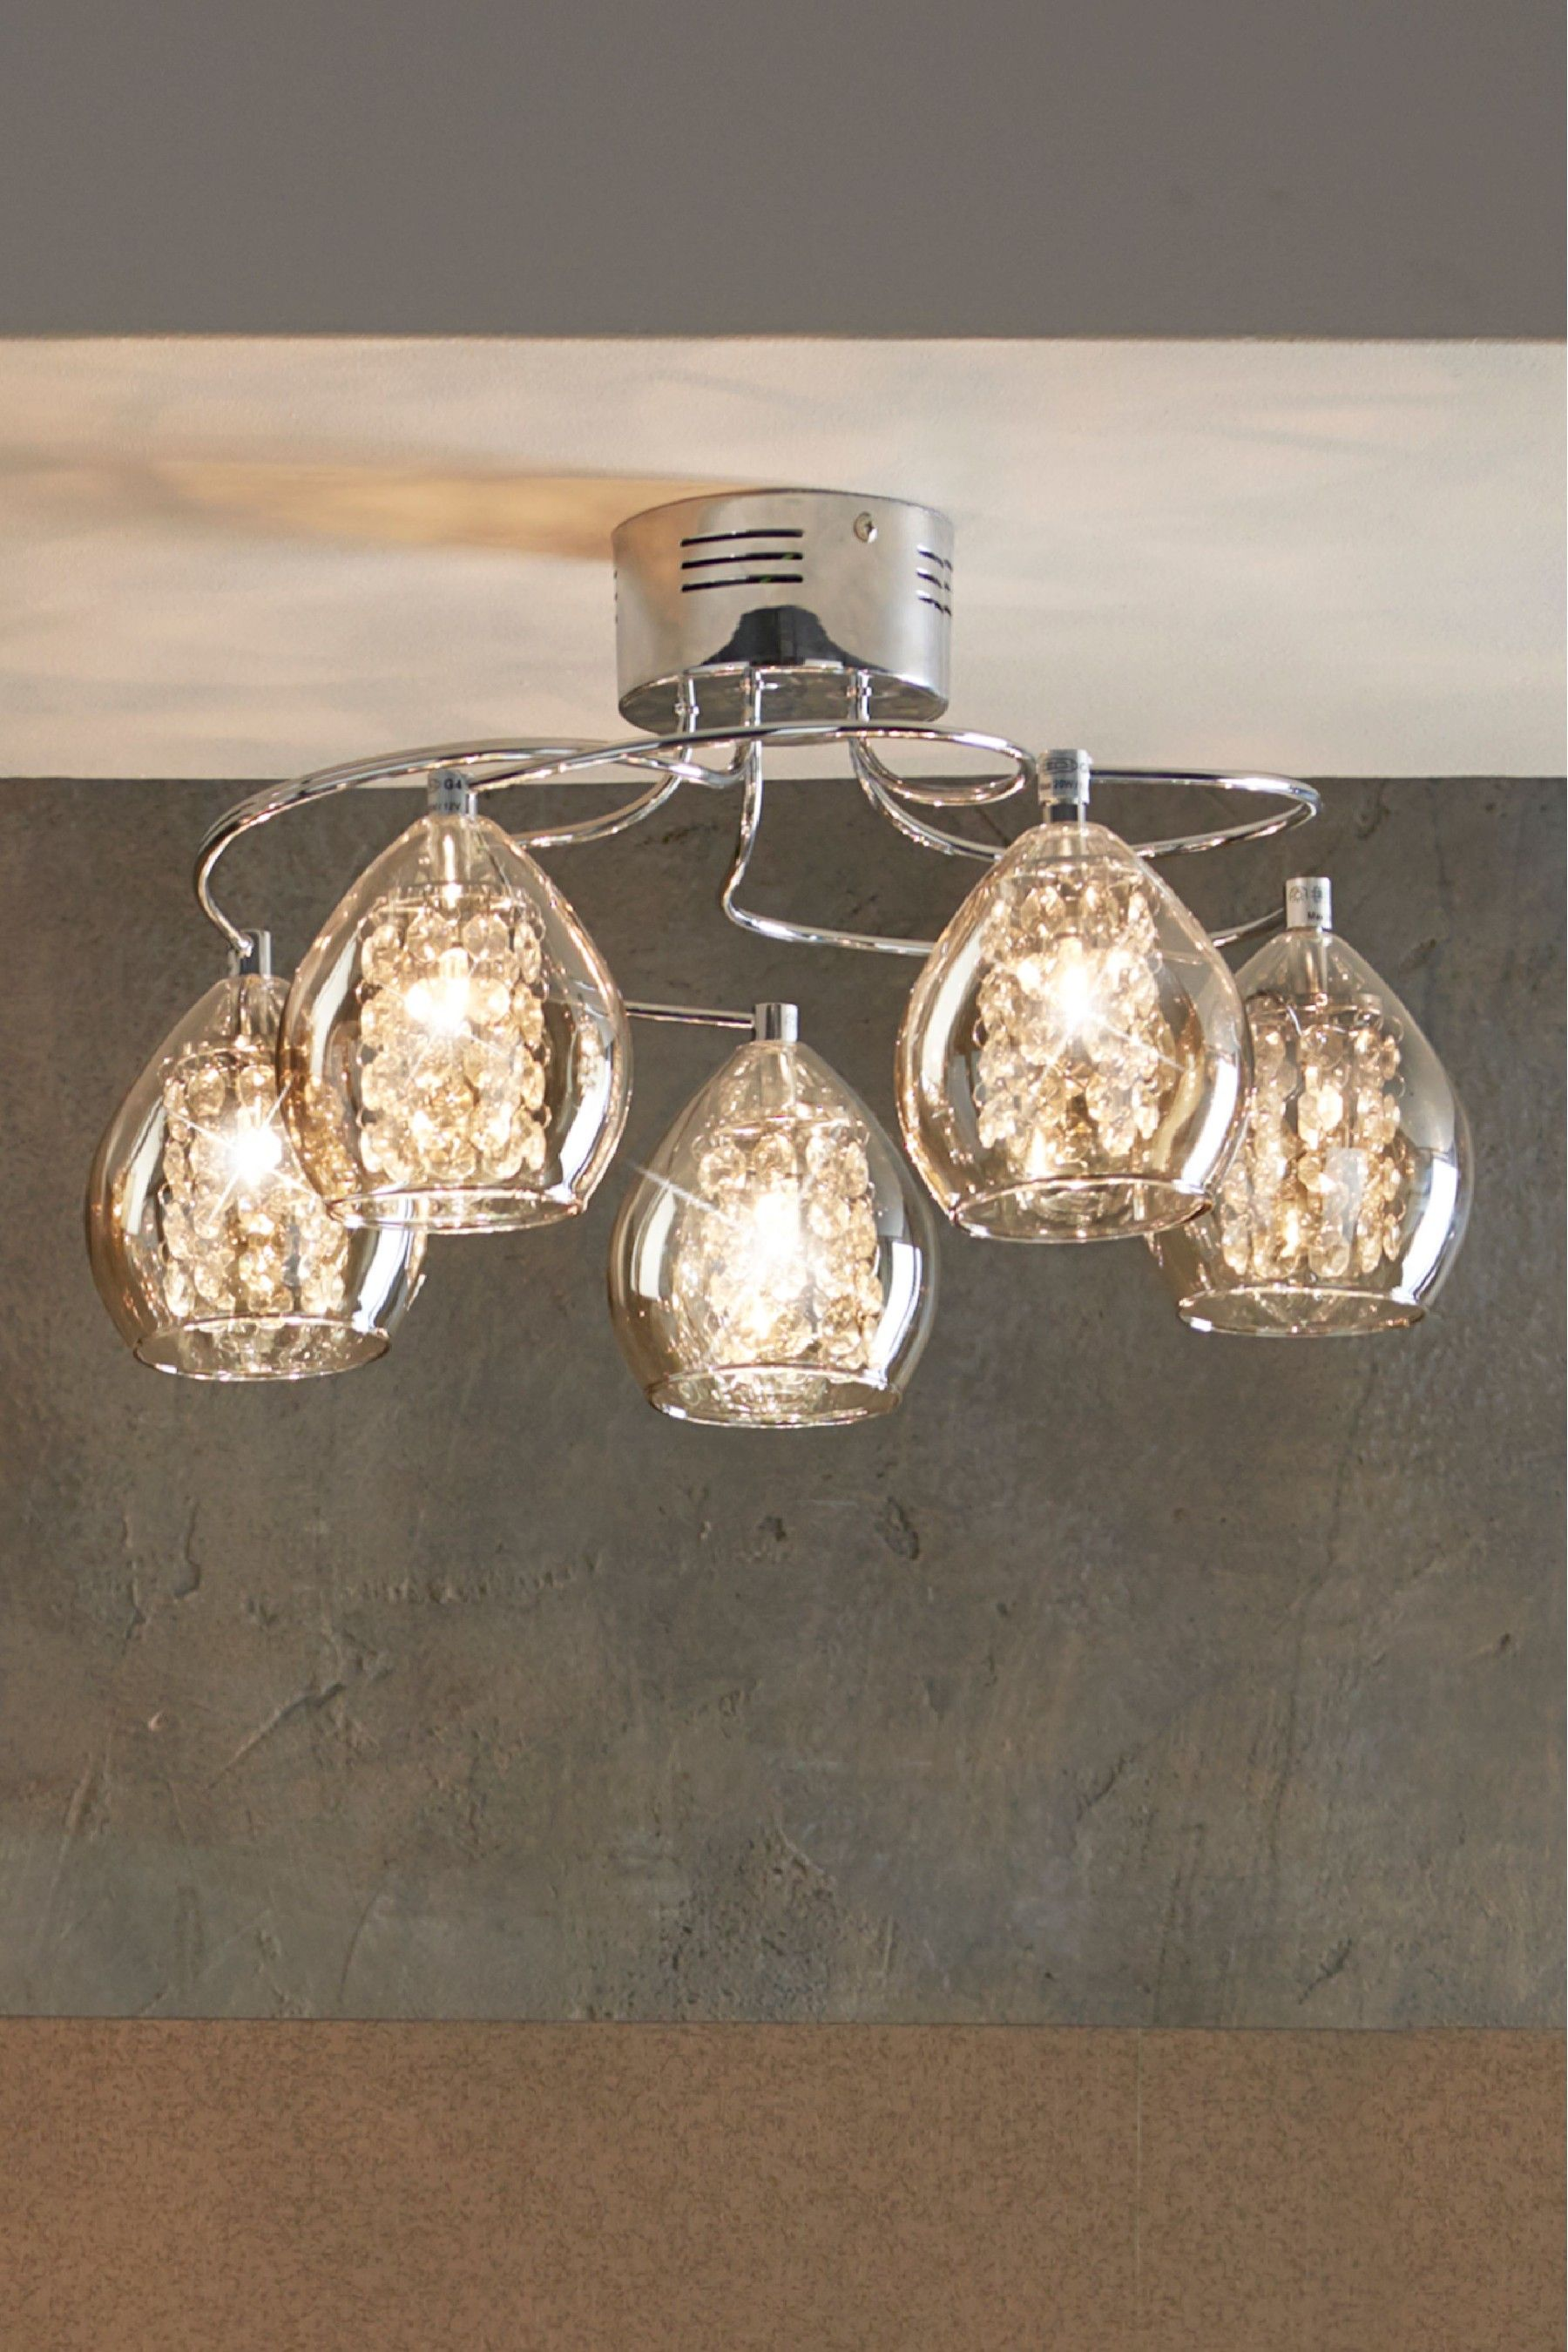 new style a325f 9921c Next Bella 5 Light Flush Fitting - Chrome | Products ...